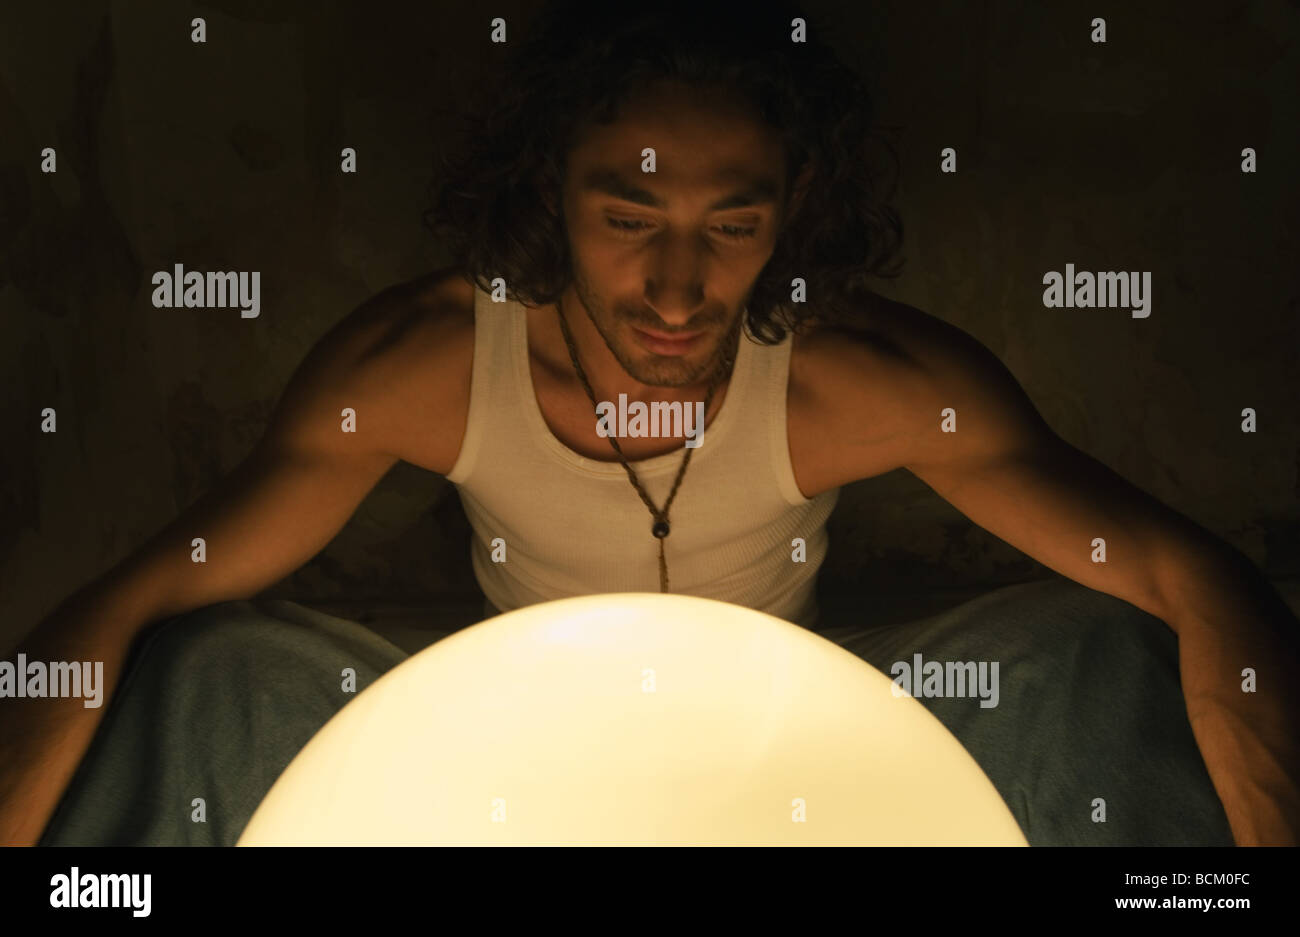 Man looking at glowing orb - Stock Image